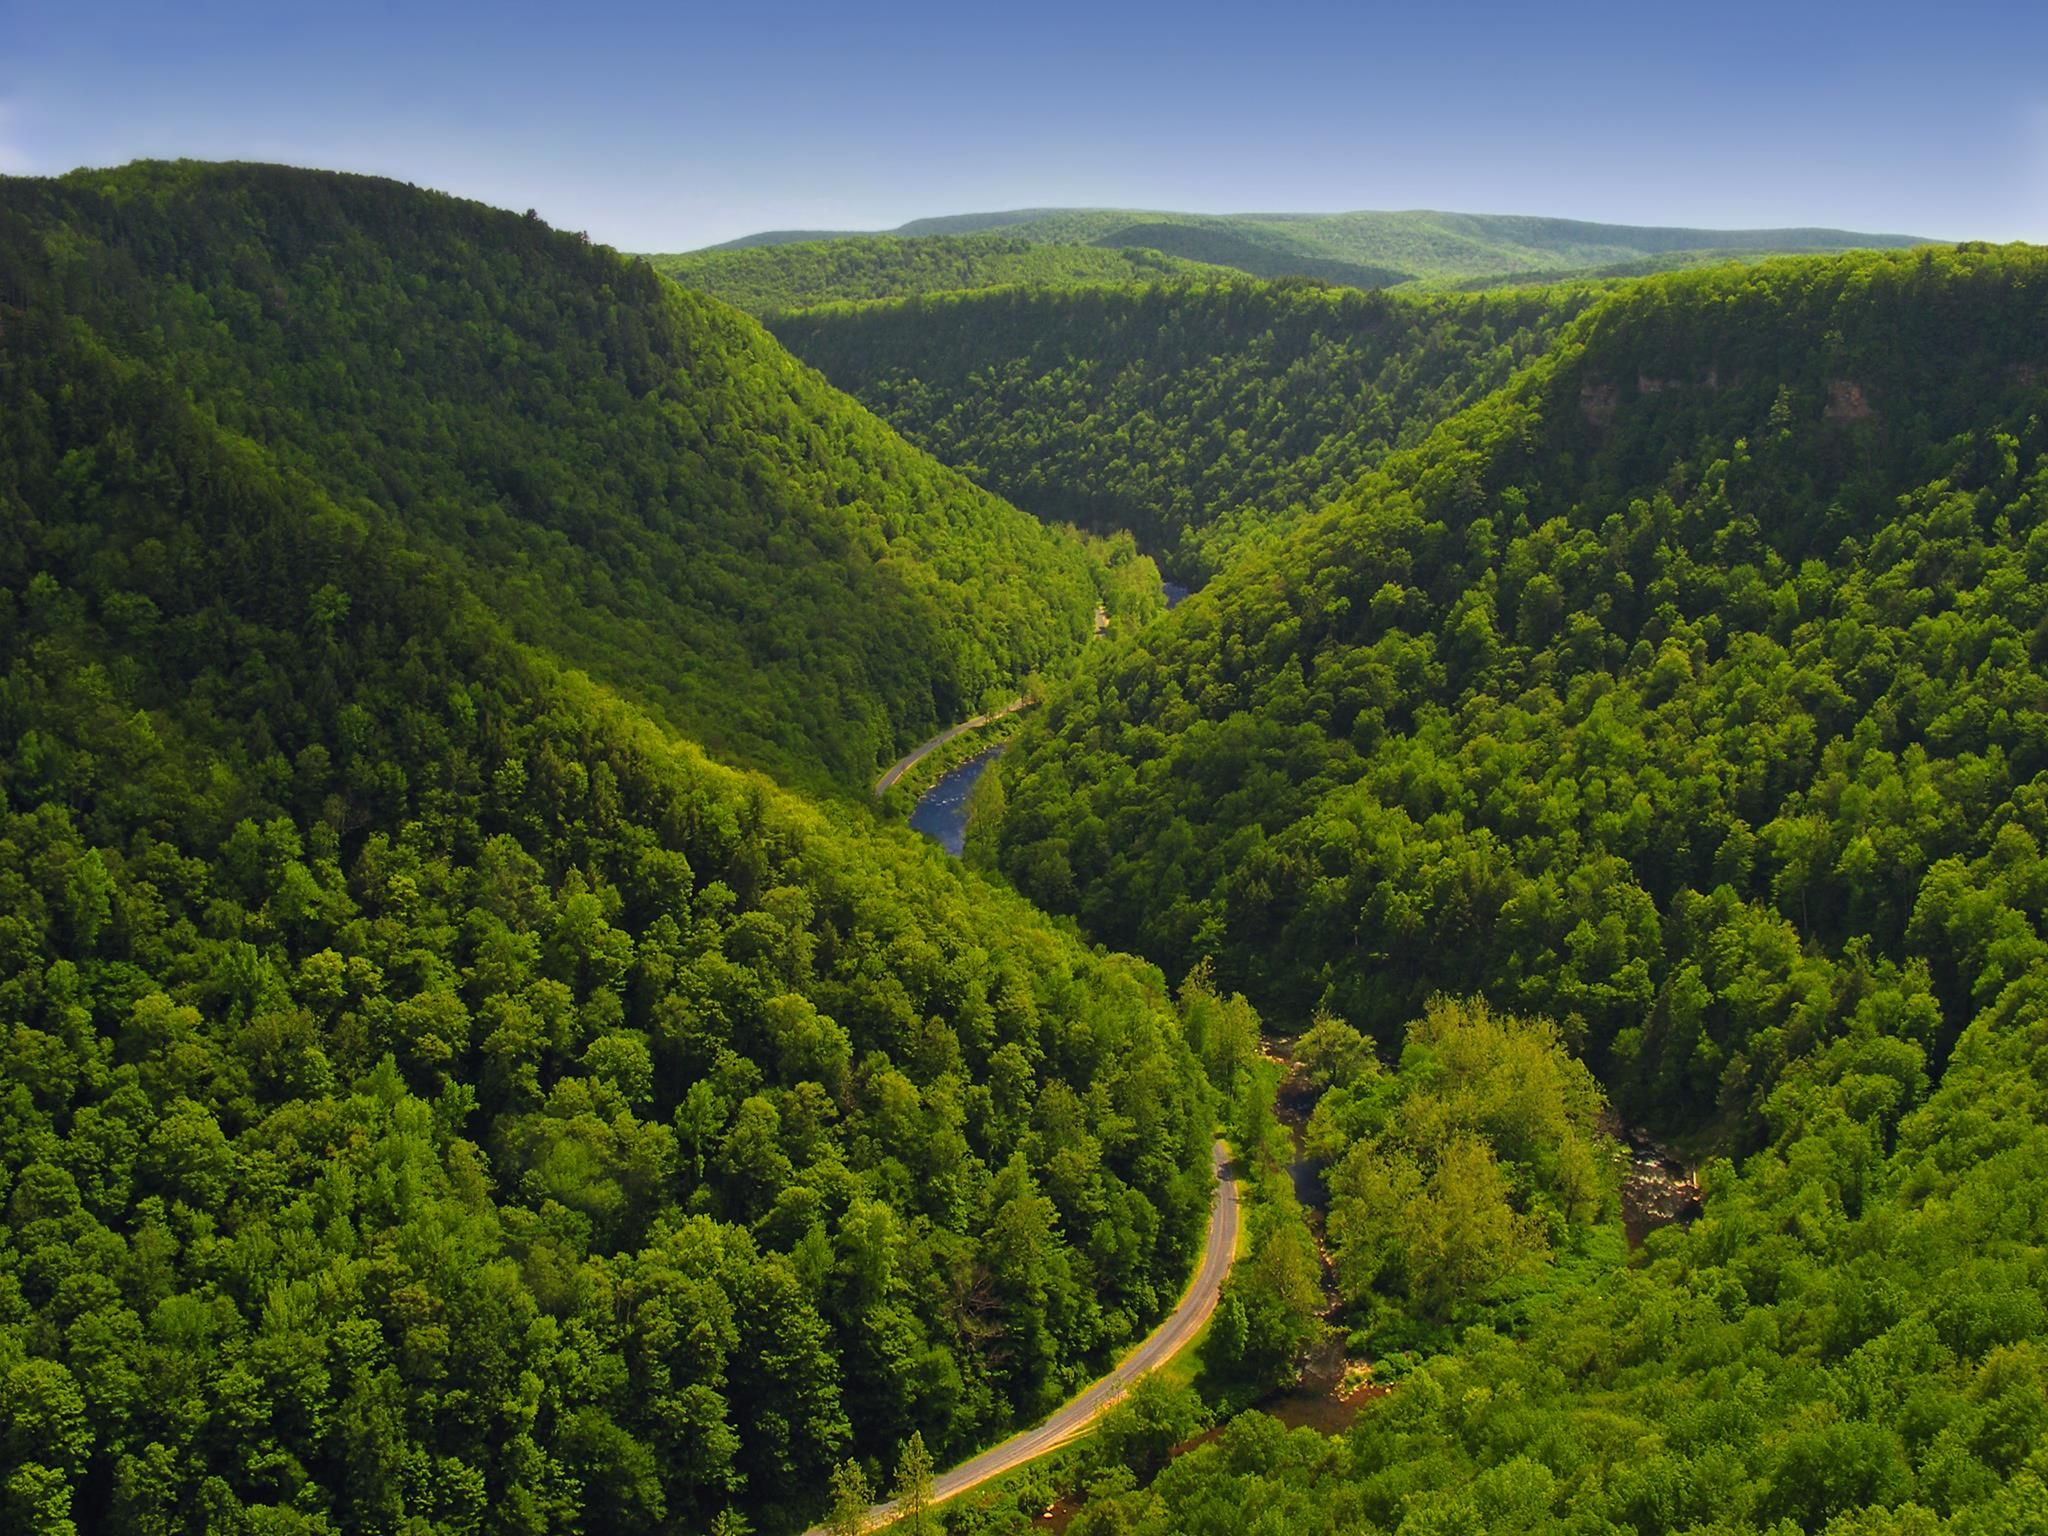 Pine Creek Gorge, sometimes called The Grand Canyon of Pennsylvania, is a 47-mile (76 km) gorge carved by Pine Creek in Pennsylvania.> http://en.wikipedia.org/wiki/Pine_Creek_Gorge